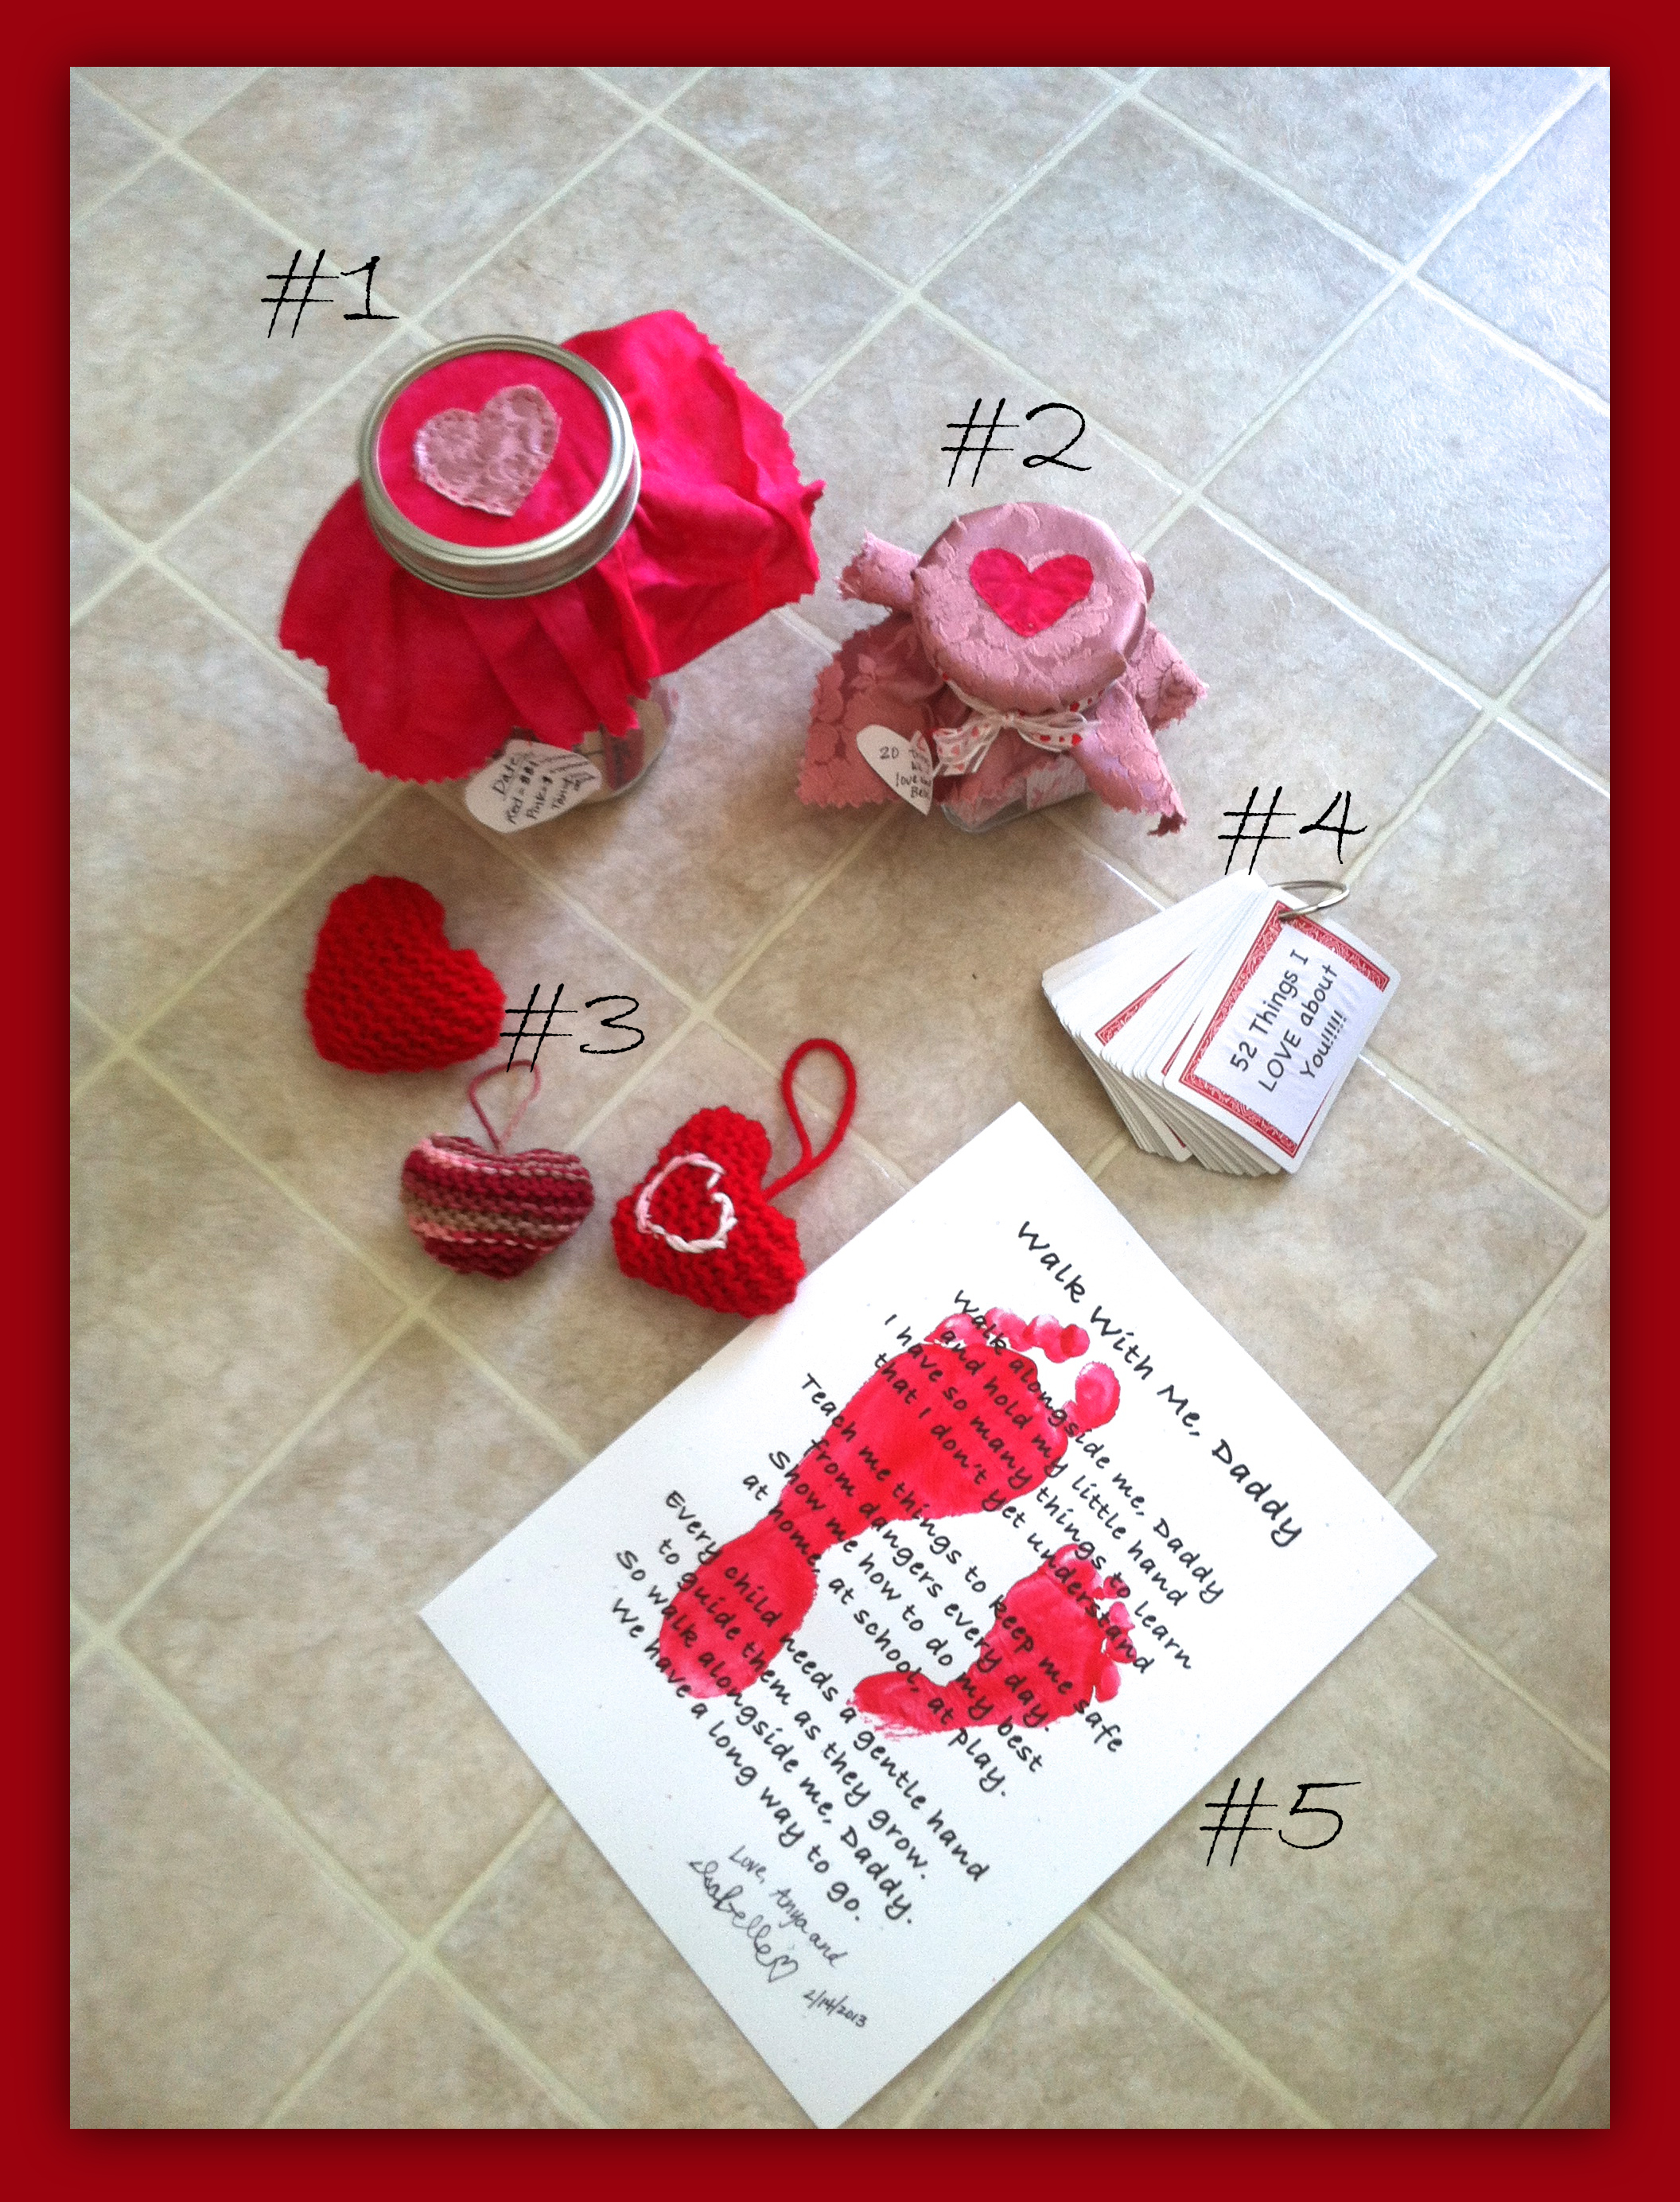 The Students' Voice : Valentine's Day Gifts: Gifts for ...